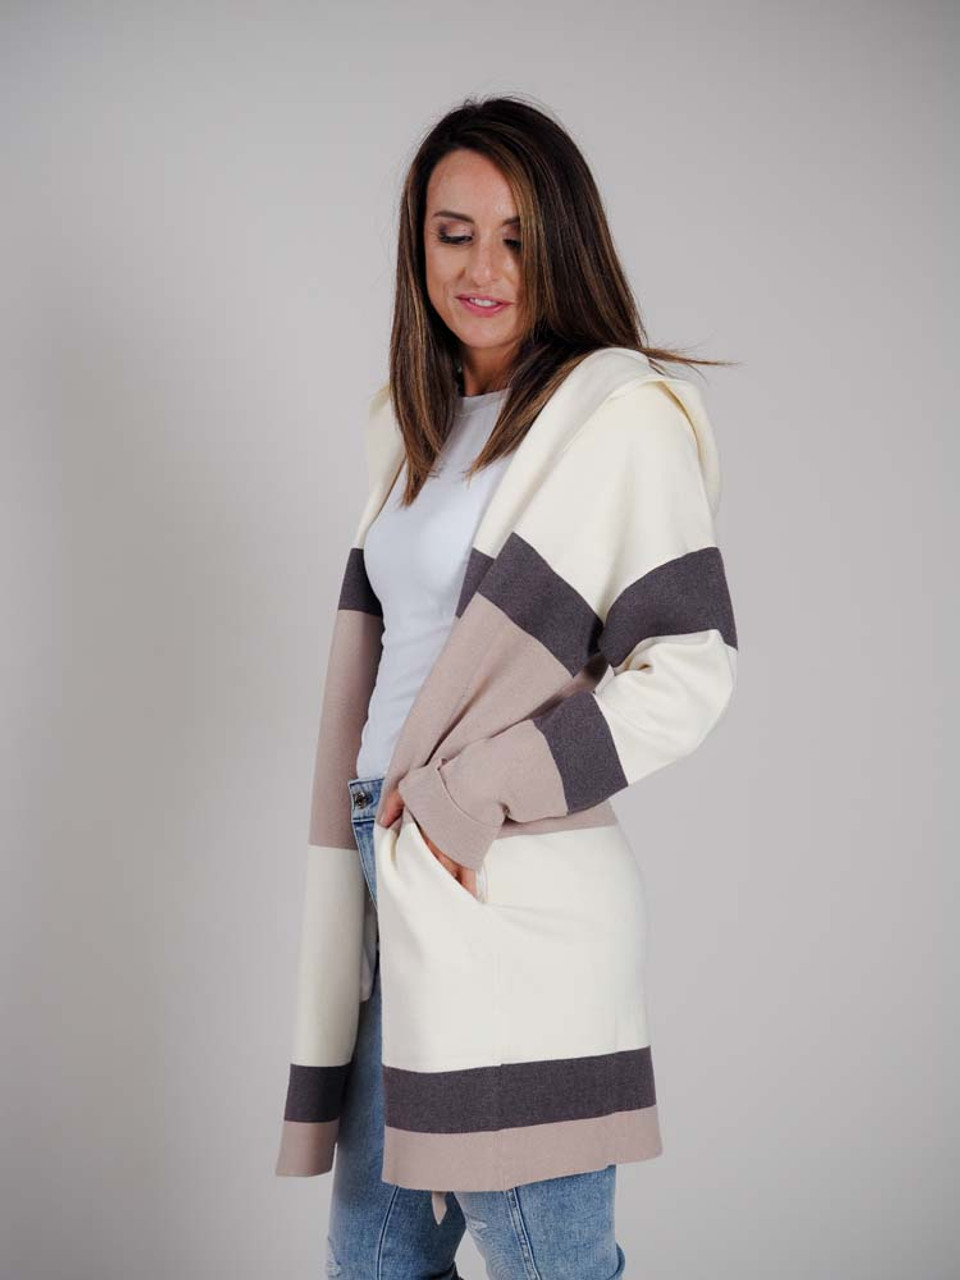 """Wonderfully soft and warm without being too heavy, this cream, gray, taupe hooded cardigan has long sleeves that are cuffed at the wrist, slit pockets in the side hems, and is 35"""" from shoulder to bottom"""